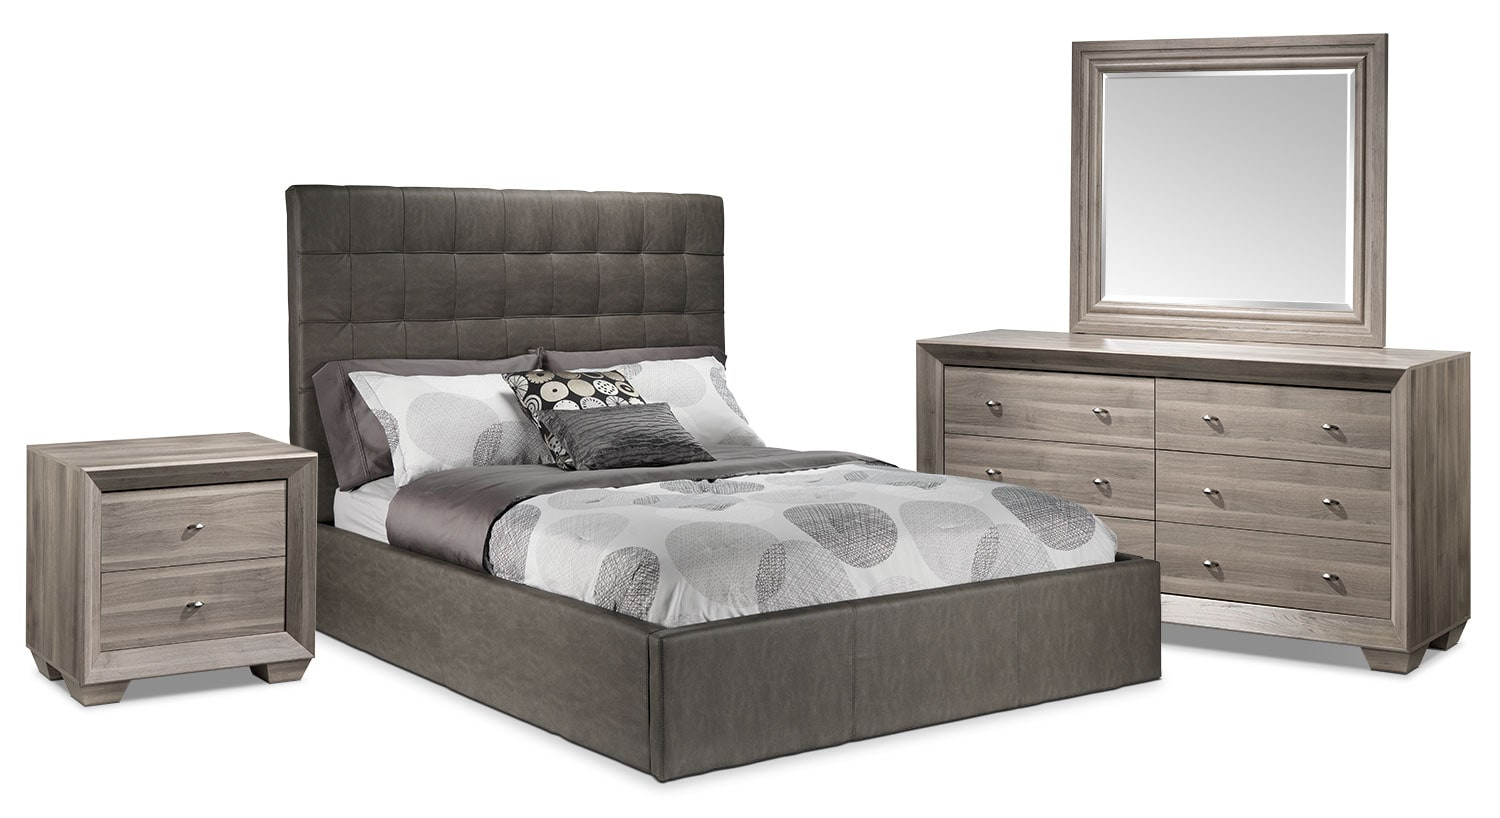 Franklin 5-Piece Queen Bedroom Set - Taupe